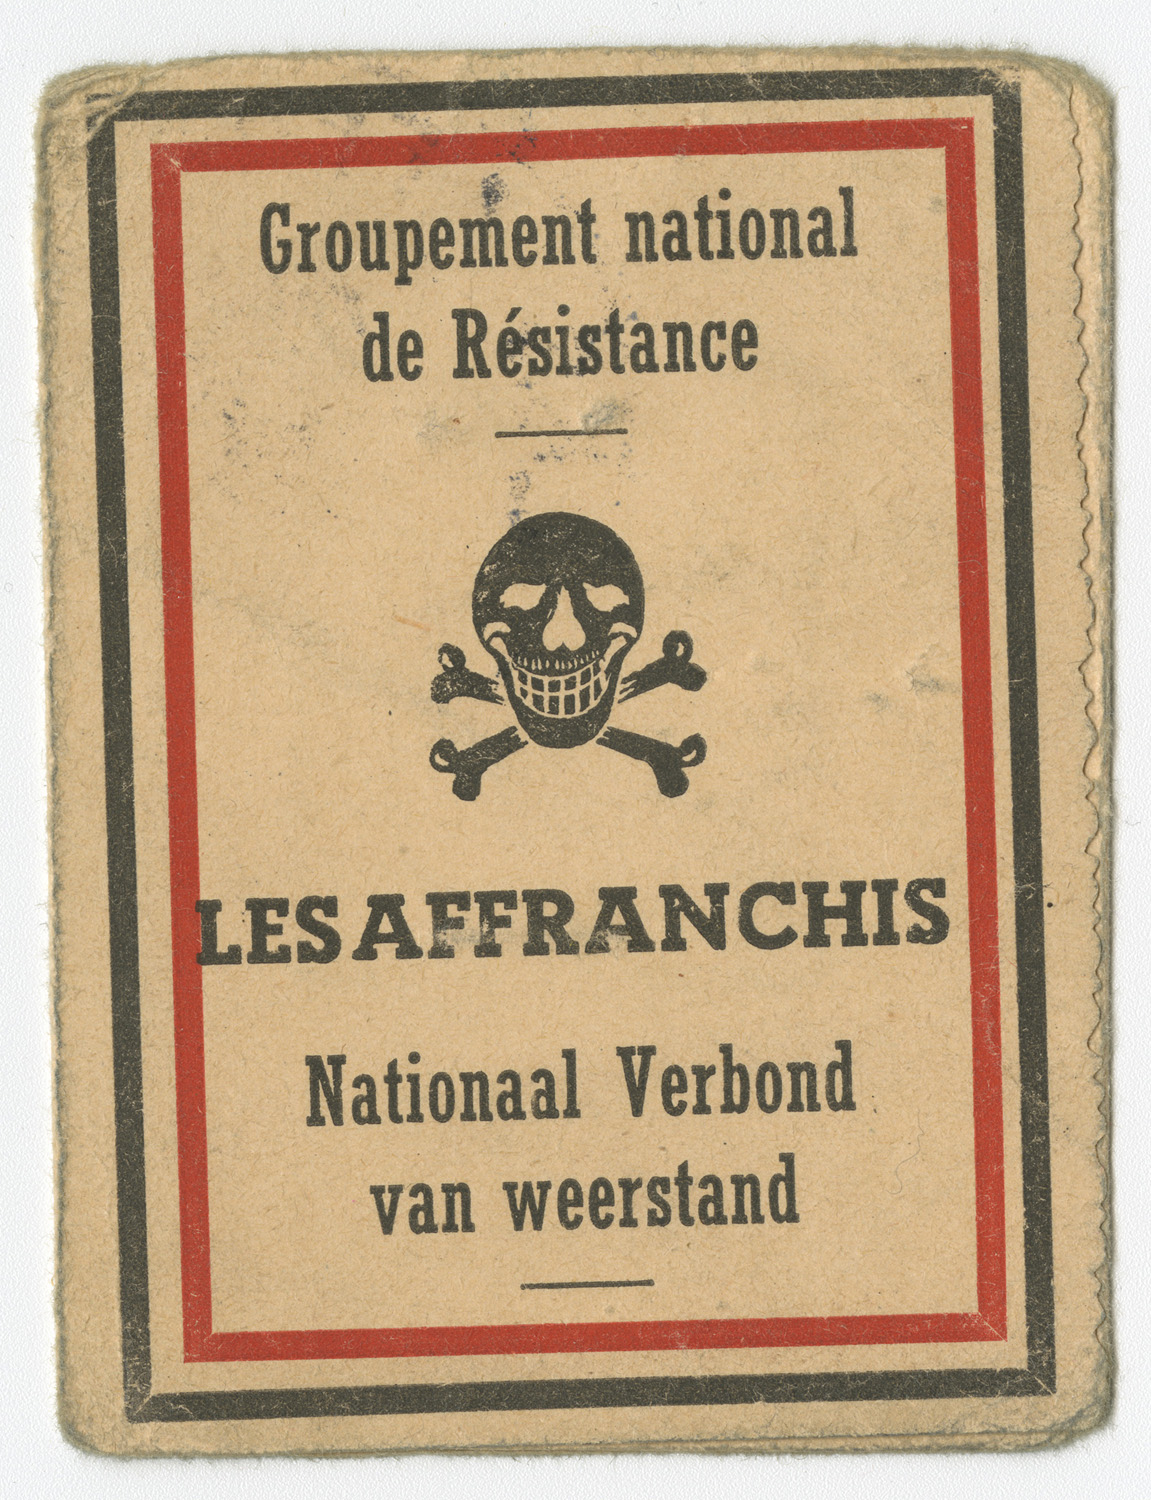 "This membership card for ""Les Affranchis"" resistance group belonged to Léopold Heinz Rübler. The group logo, a skull with a mocking smile, is printed on the booklet's cover."